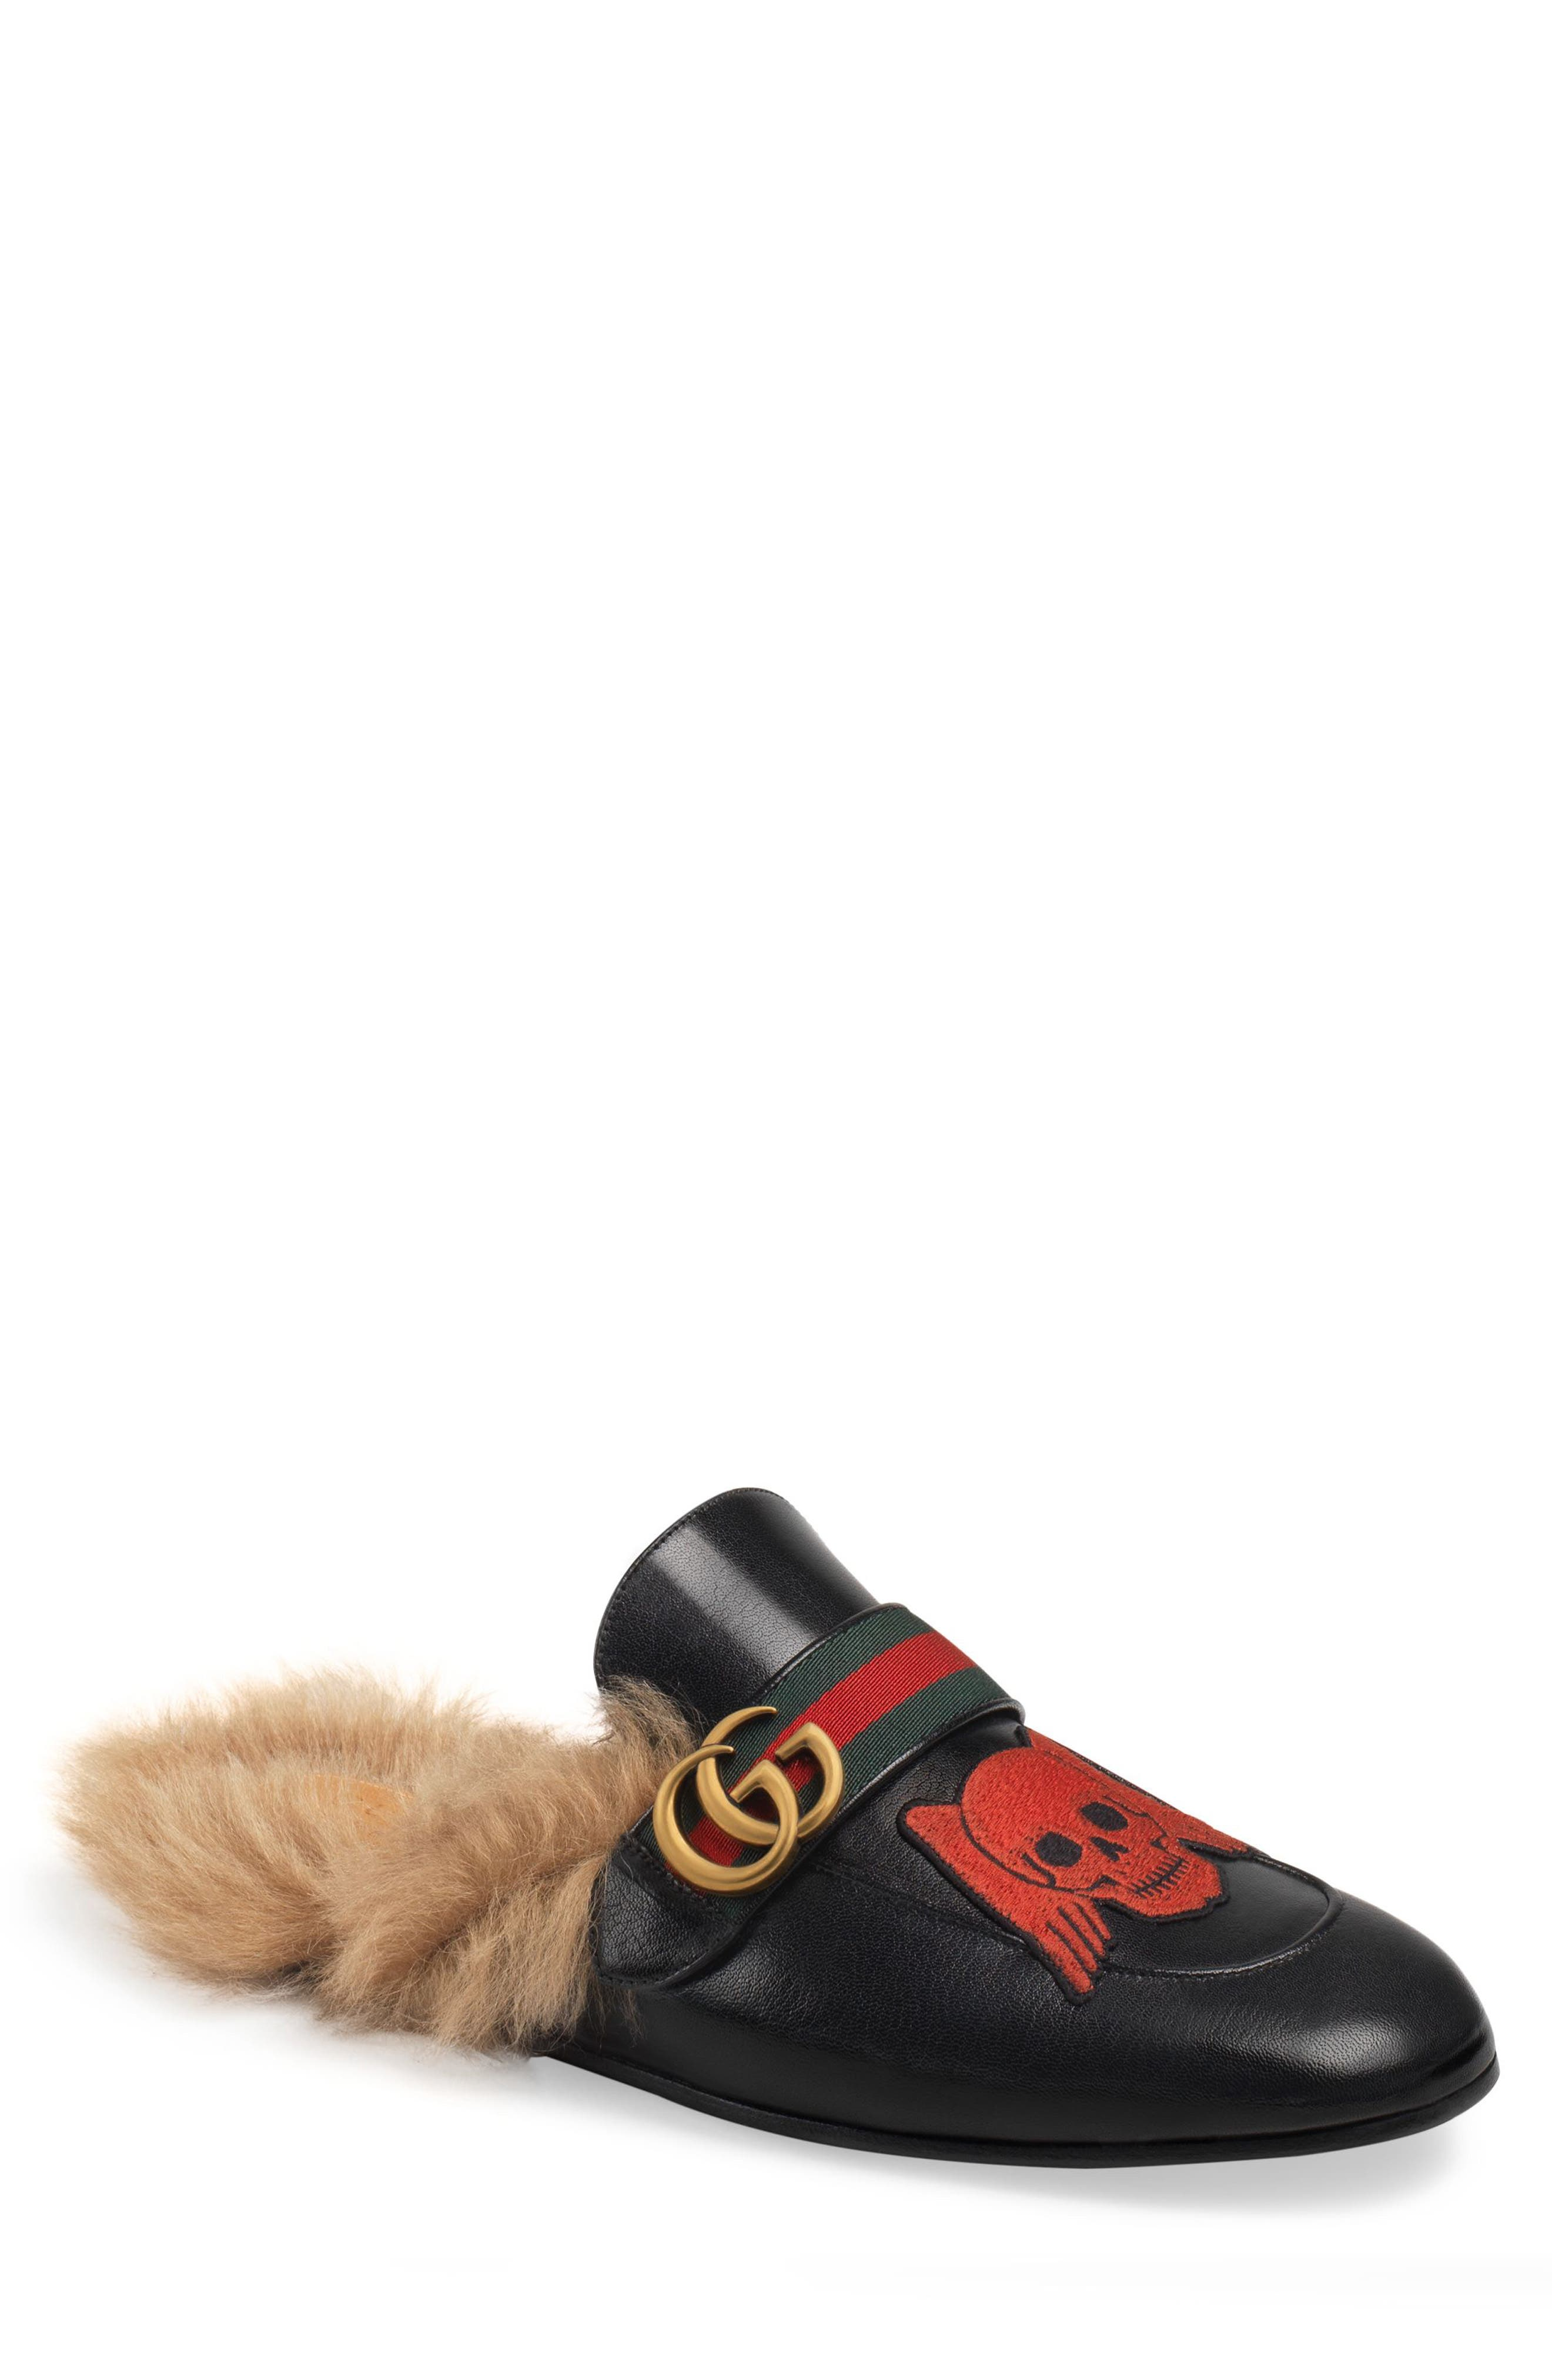 GUCCI Princetown Double G Loafer Mule with Genuine Shearling, Main, color, BLACK